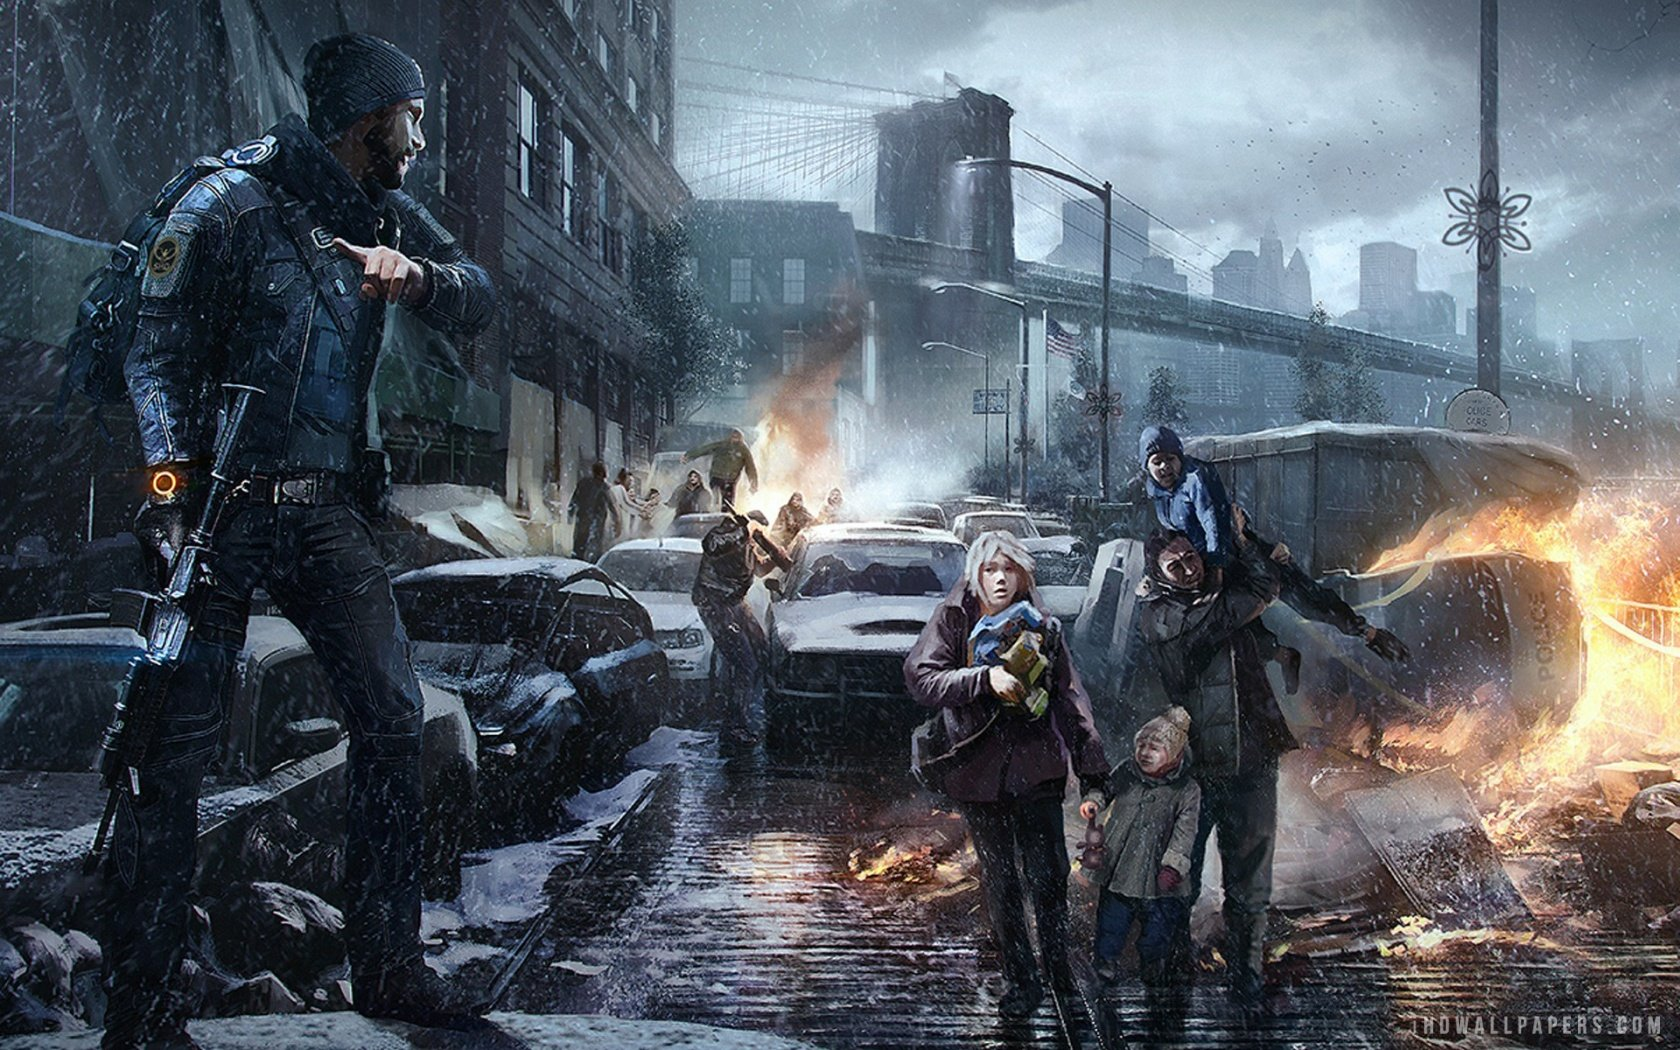 Tom Clancys The Division Concept Art HD Wallpaper   iHD Wallpapers 1680x1050